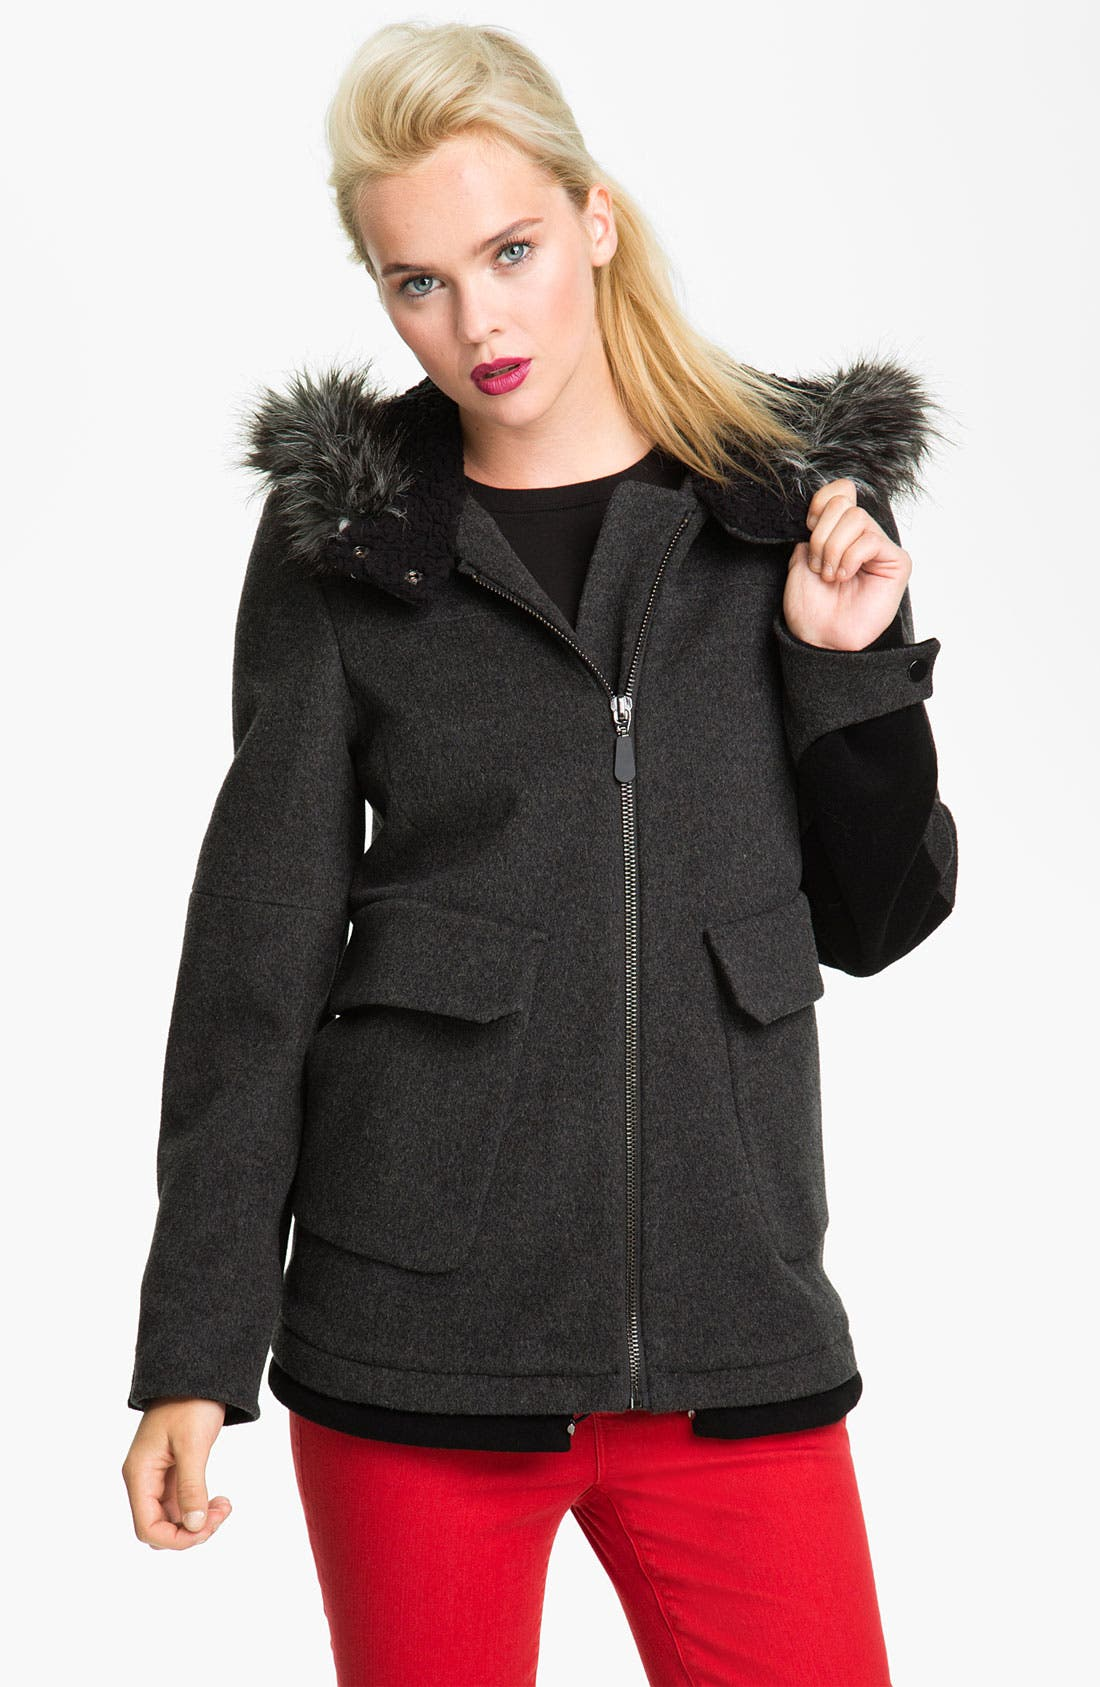 Main Image - Kristen Blake Wool Blend Jacket with Faux Fur Trim